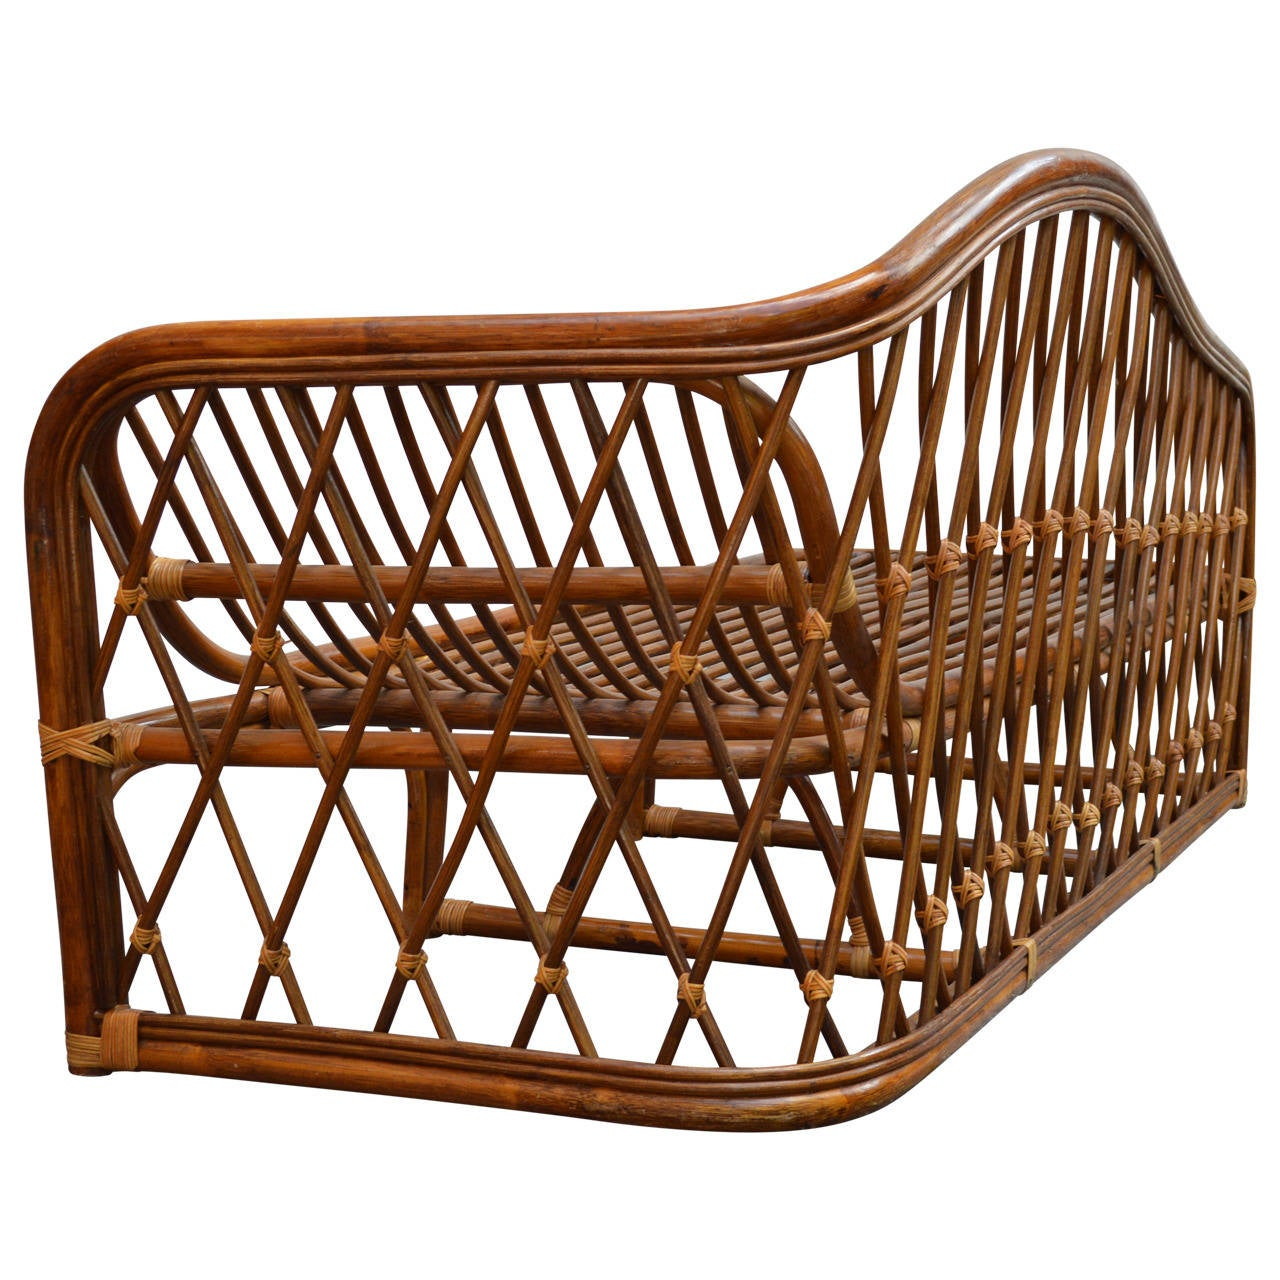 20th Century Vintage Rattan Chaise Lounge